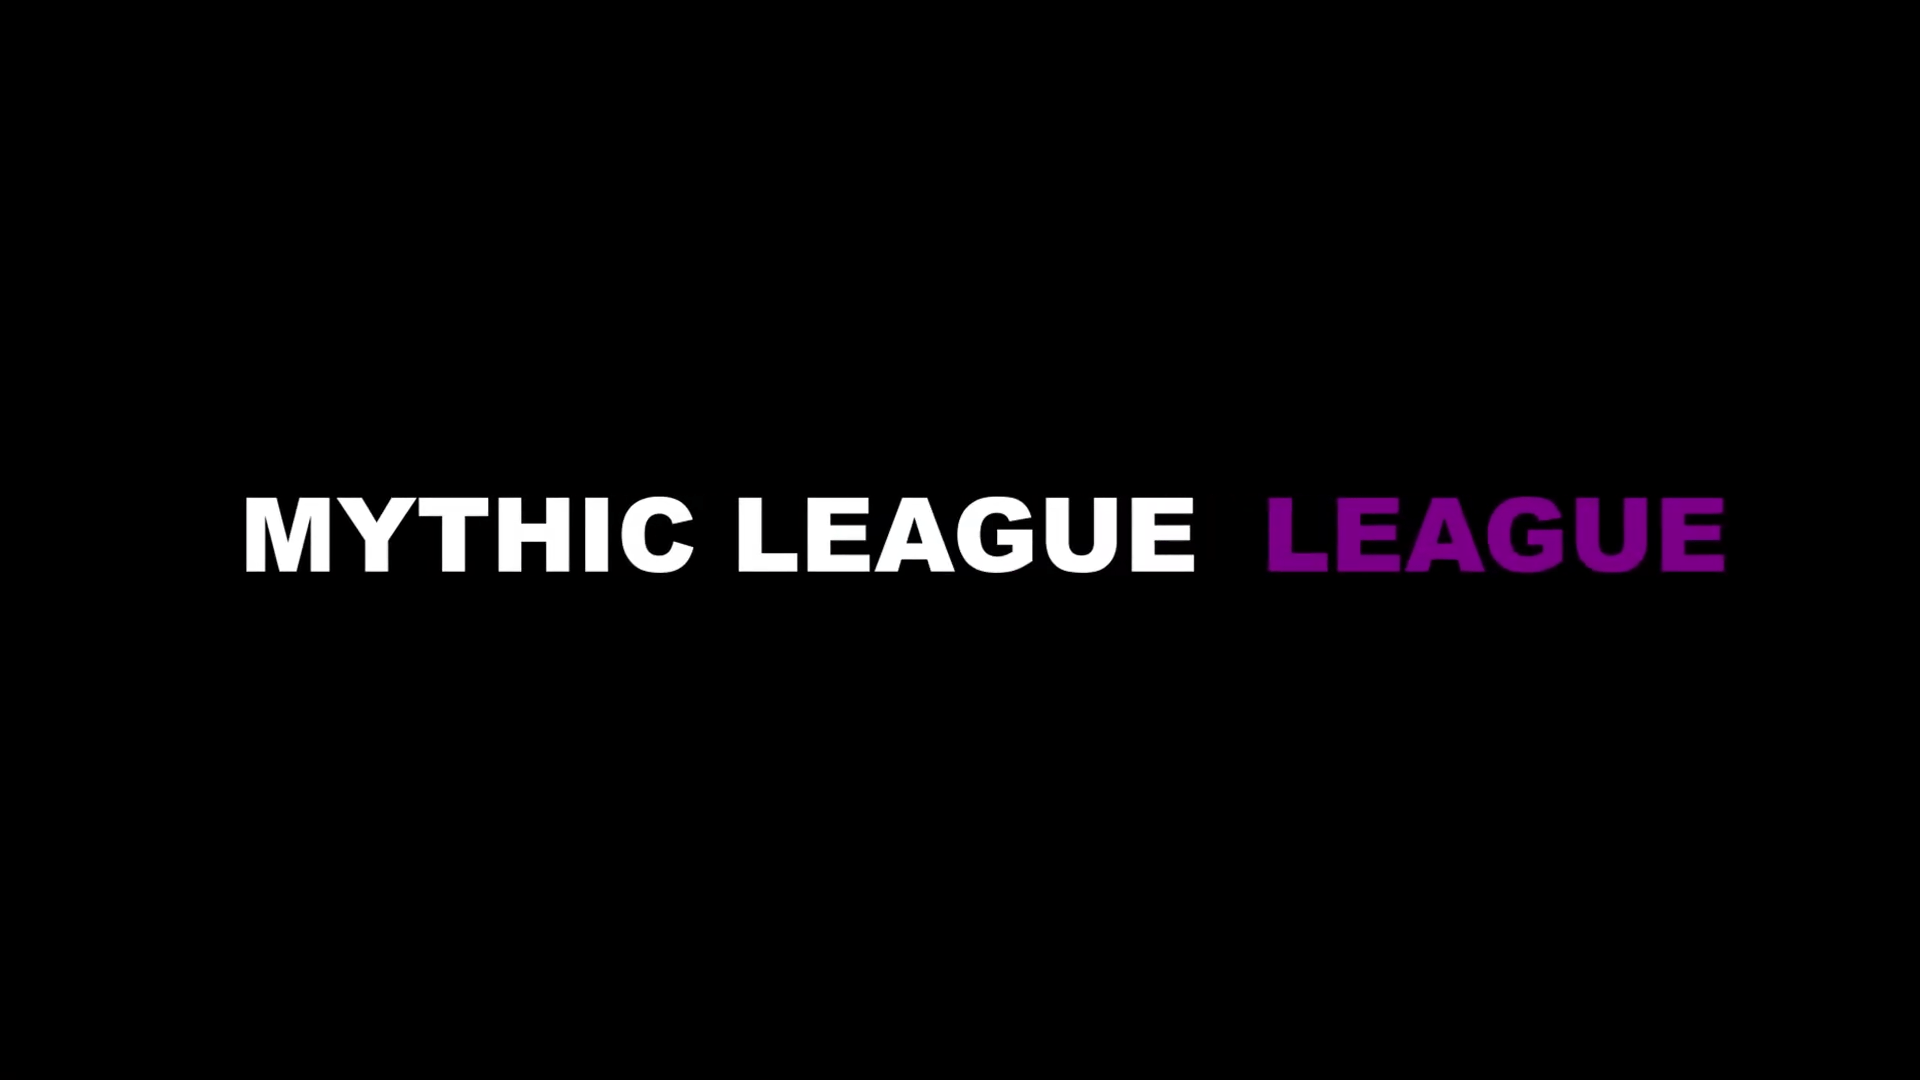 Looking To Make A Name For Yourself In CS:GO? Mythic Cup Has Two Tourneys Coming Up